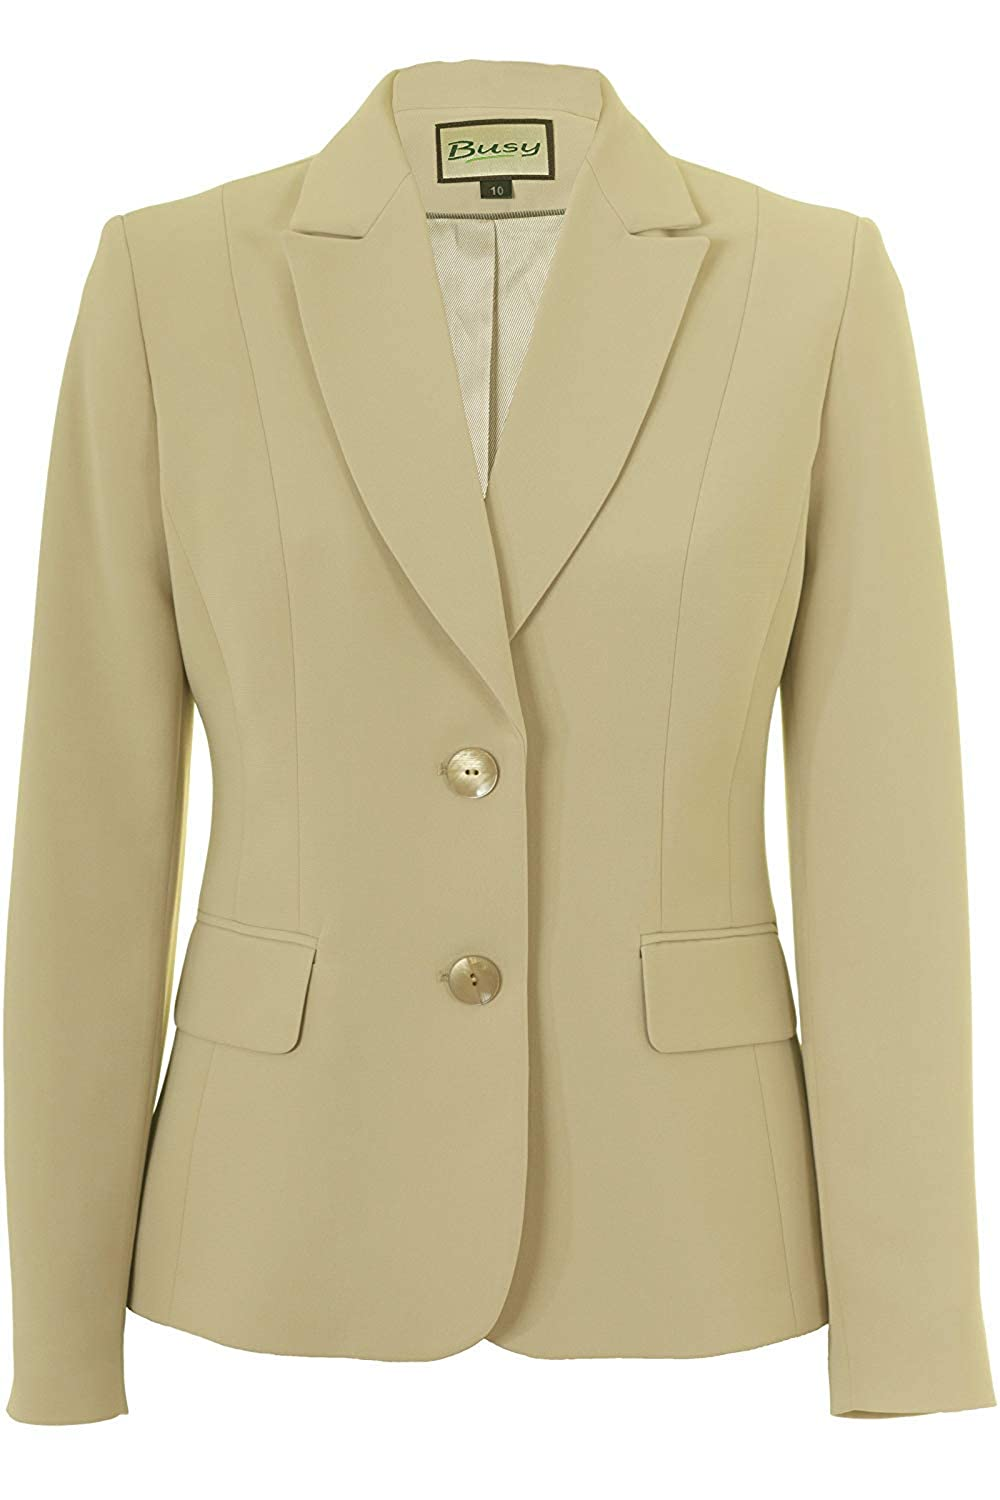 Busy Clothing Womens Beige Suit Jacket